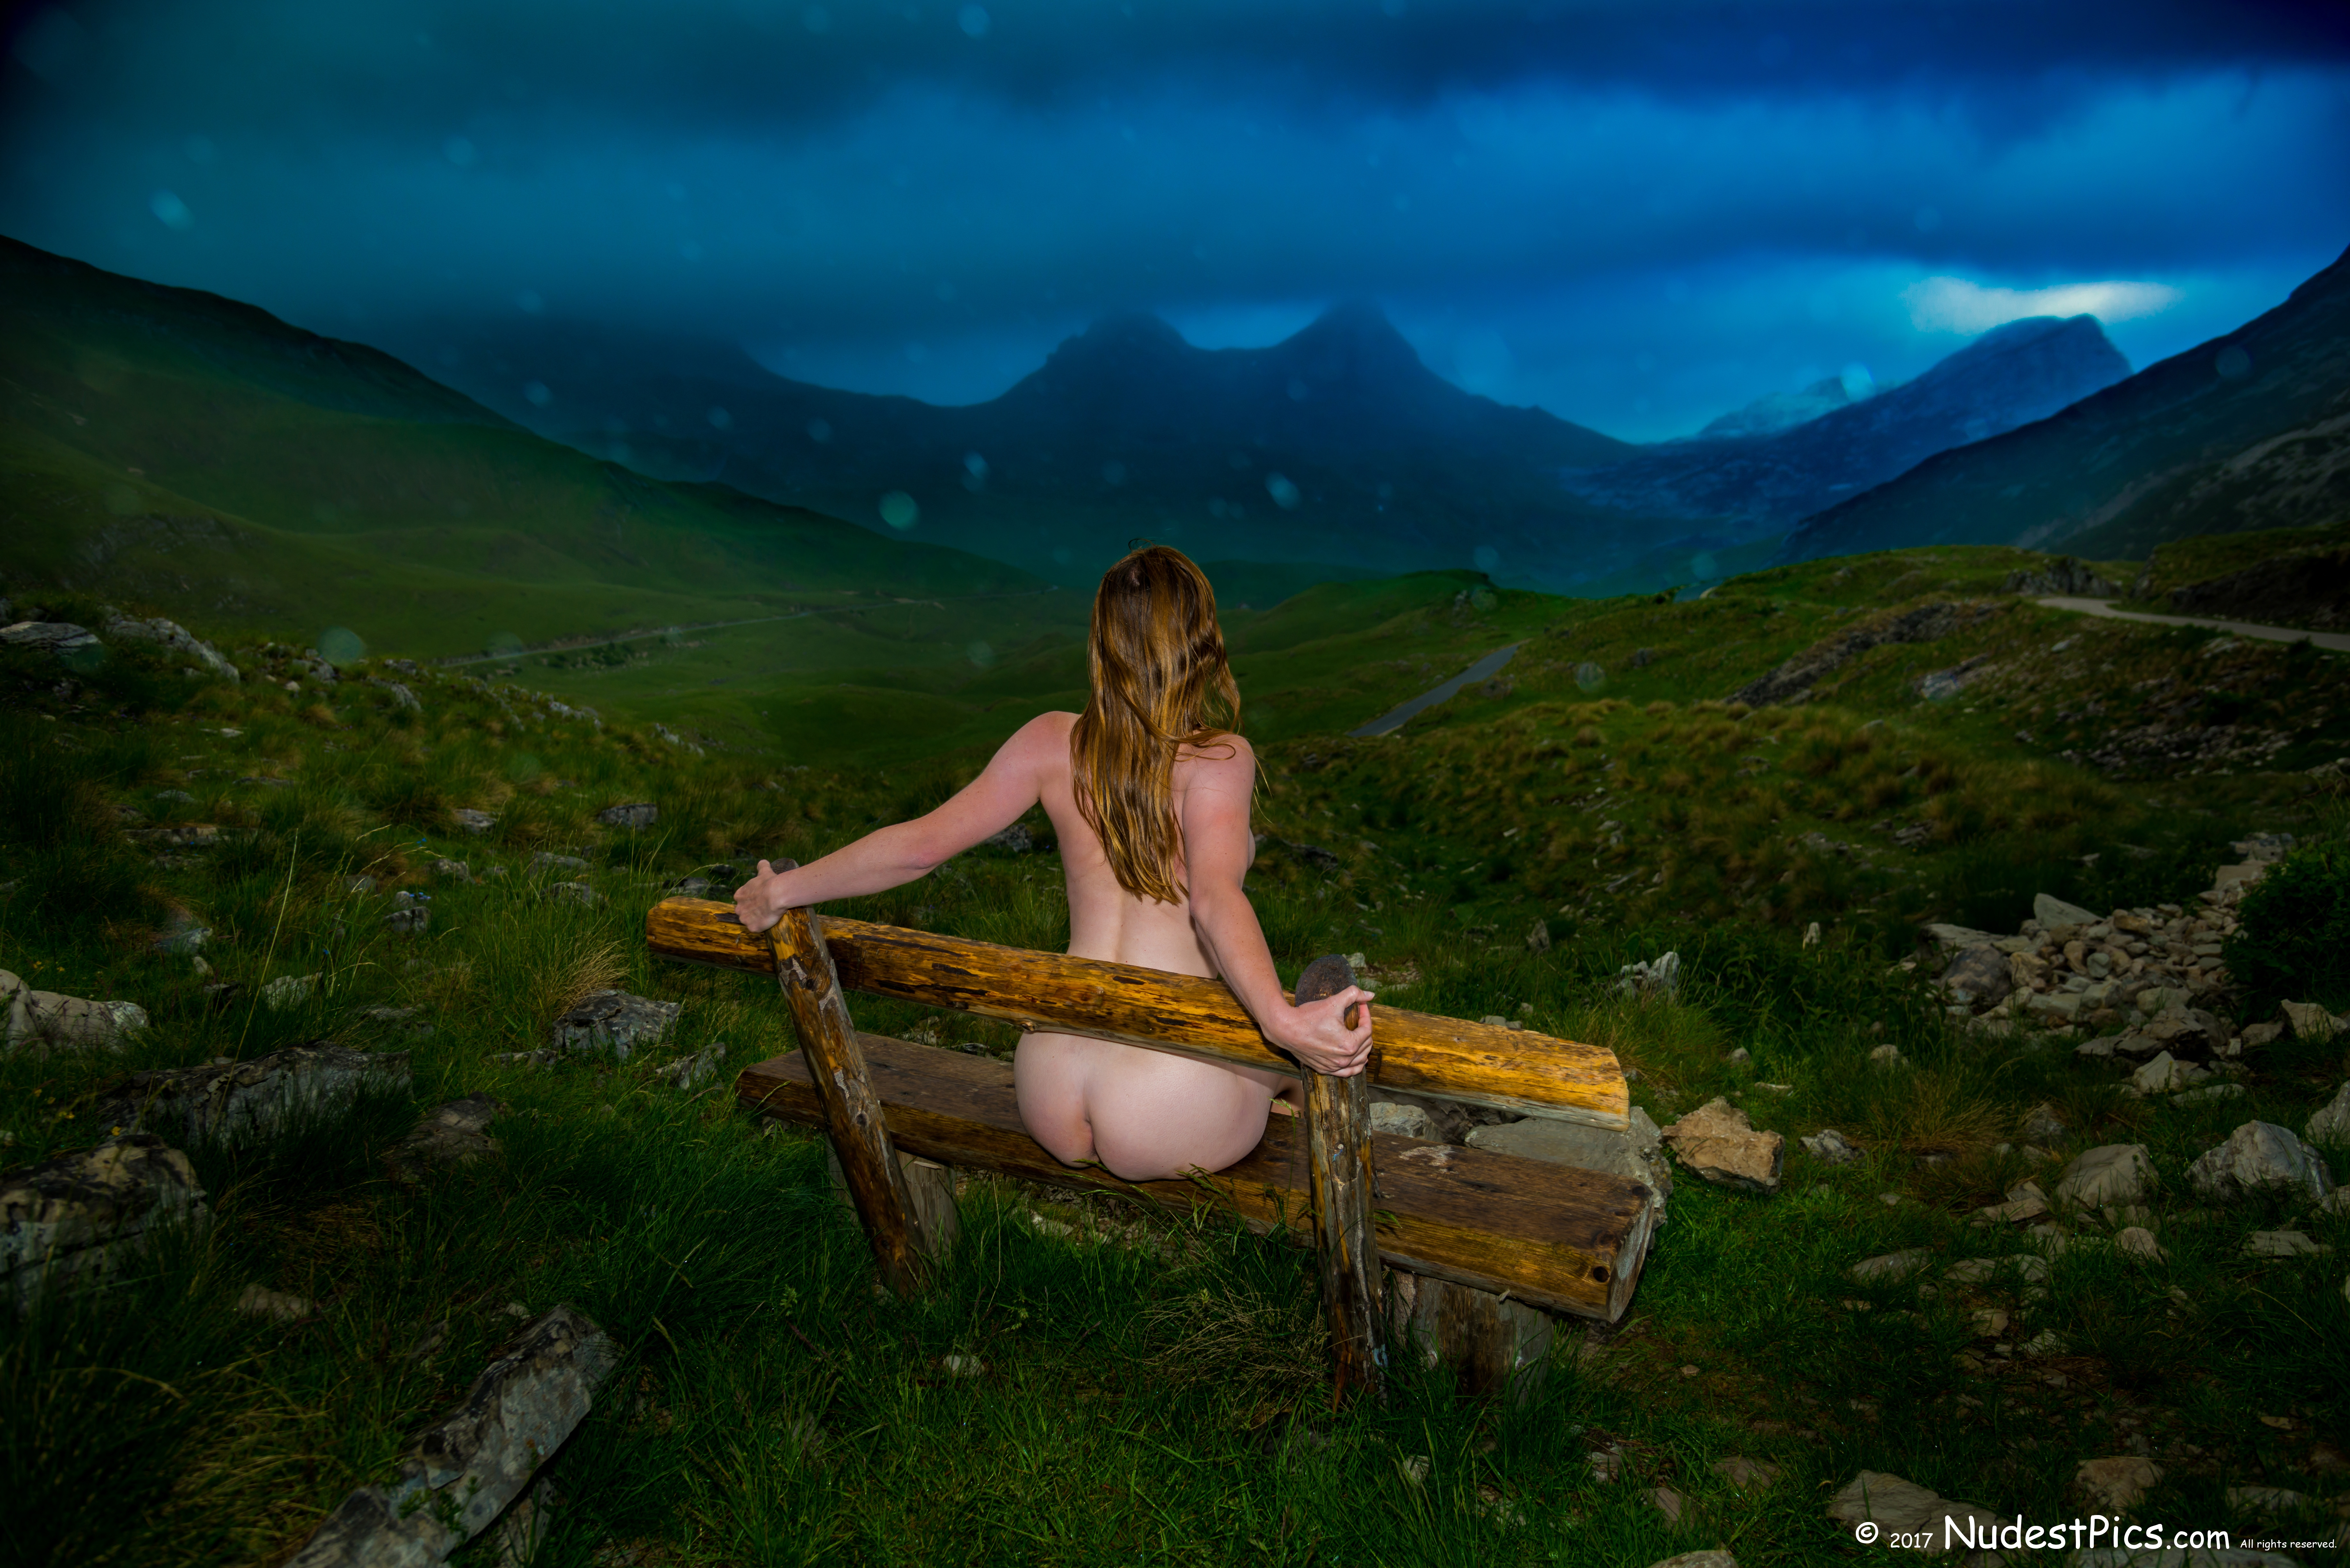 Naked Girl on Bench Watching the Devi'l Mountain HD